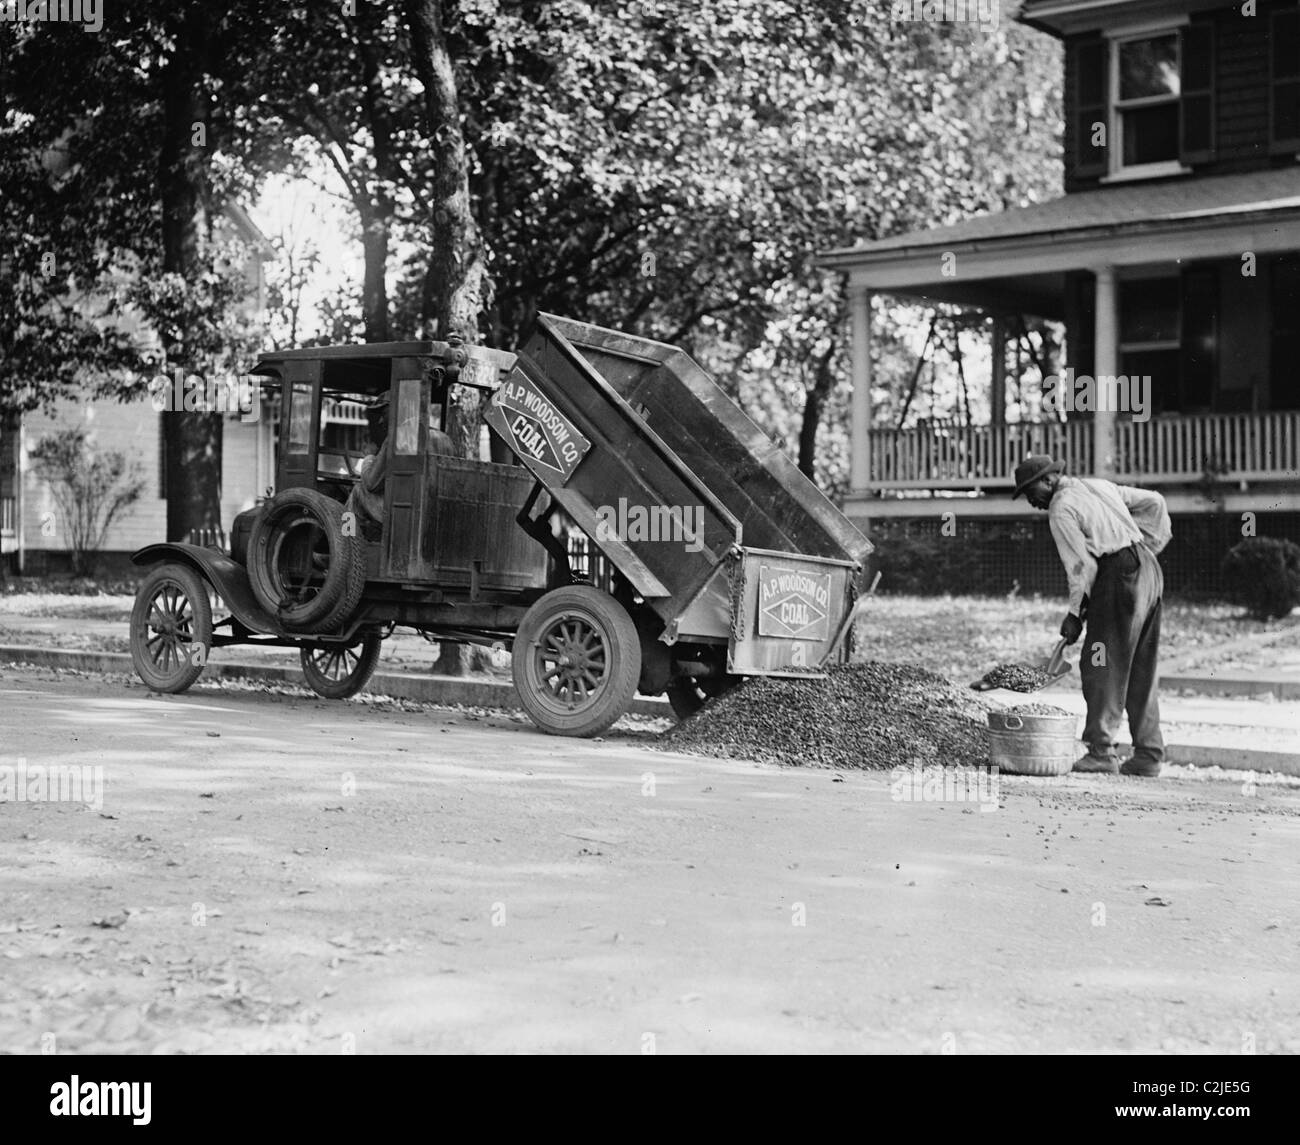 Ford Trucks Stock Photos Images Alamy 1961 Dump Truck Heating Coal Being Shoveled From A Image